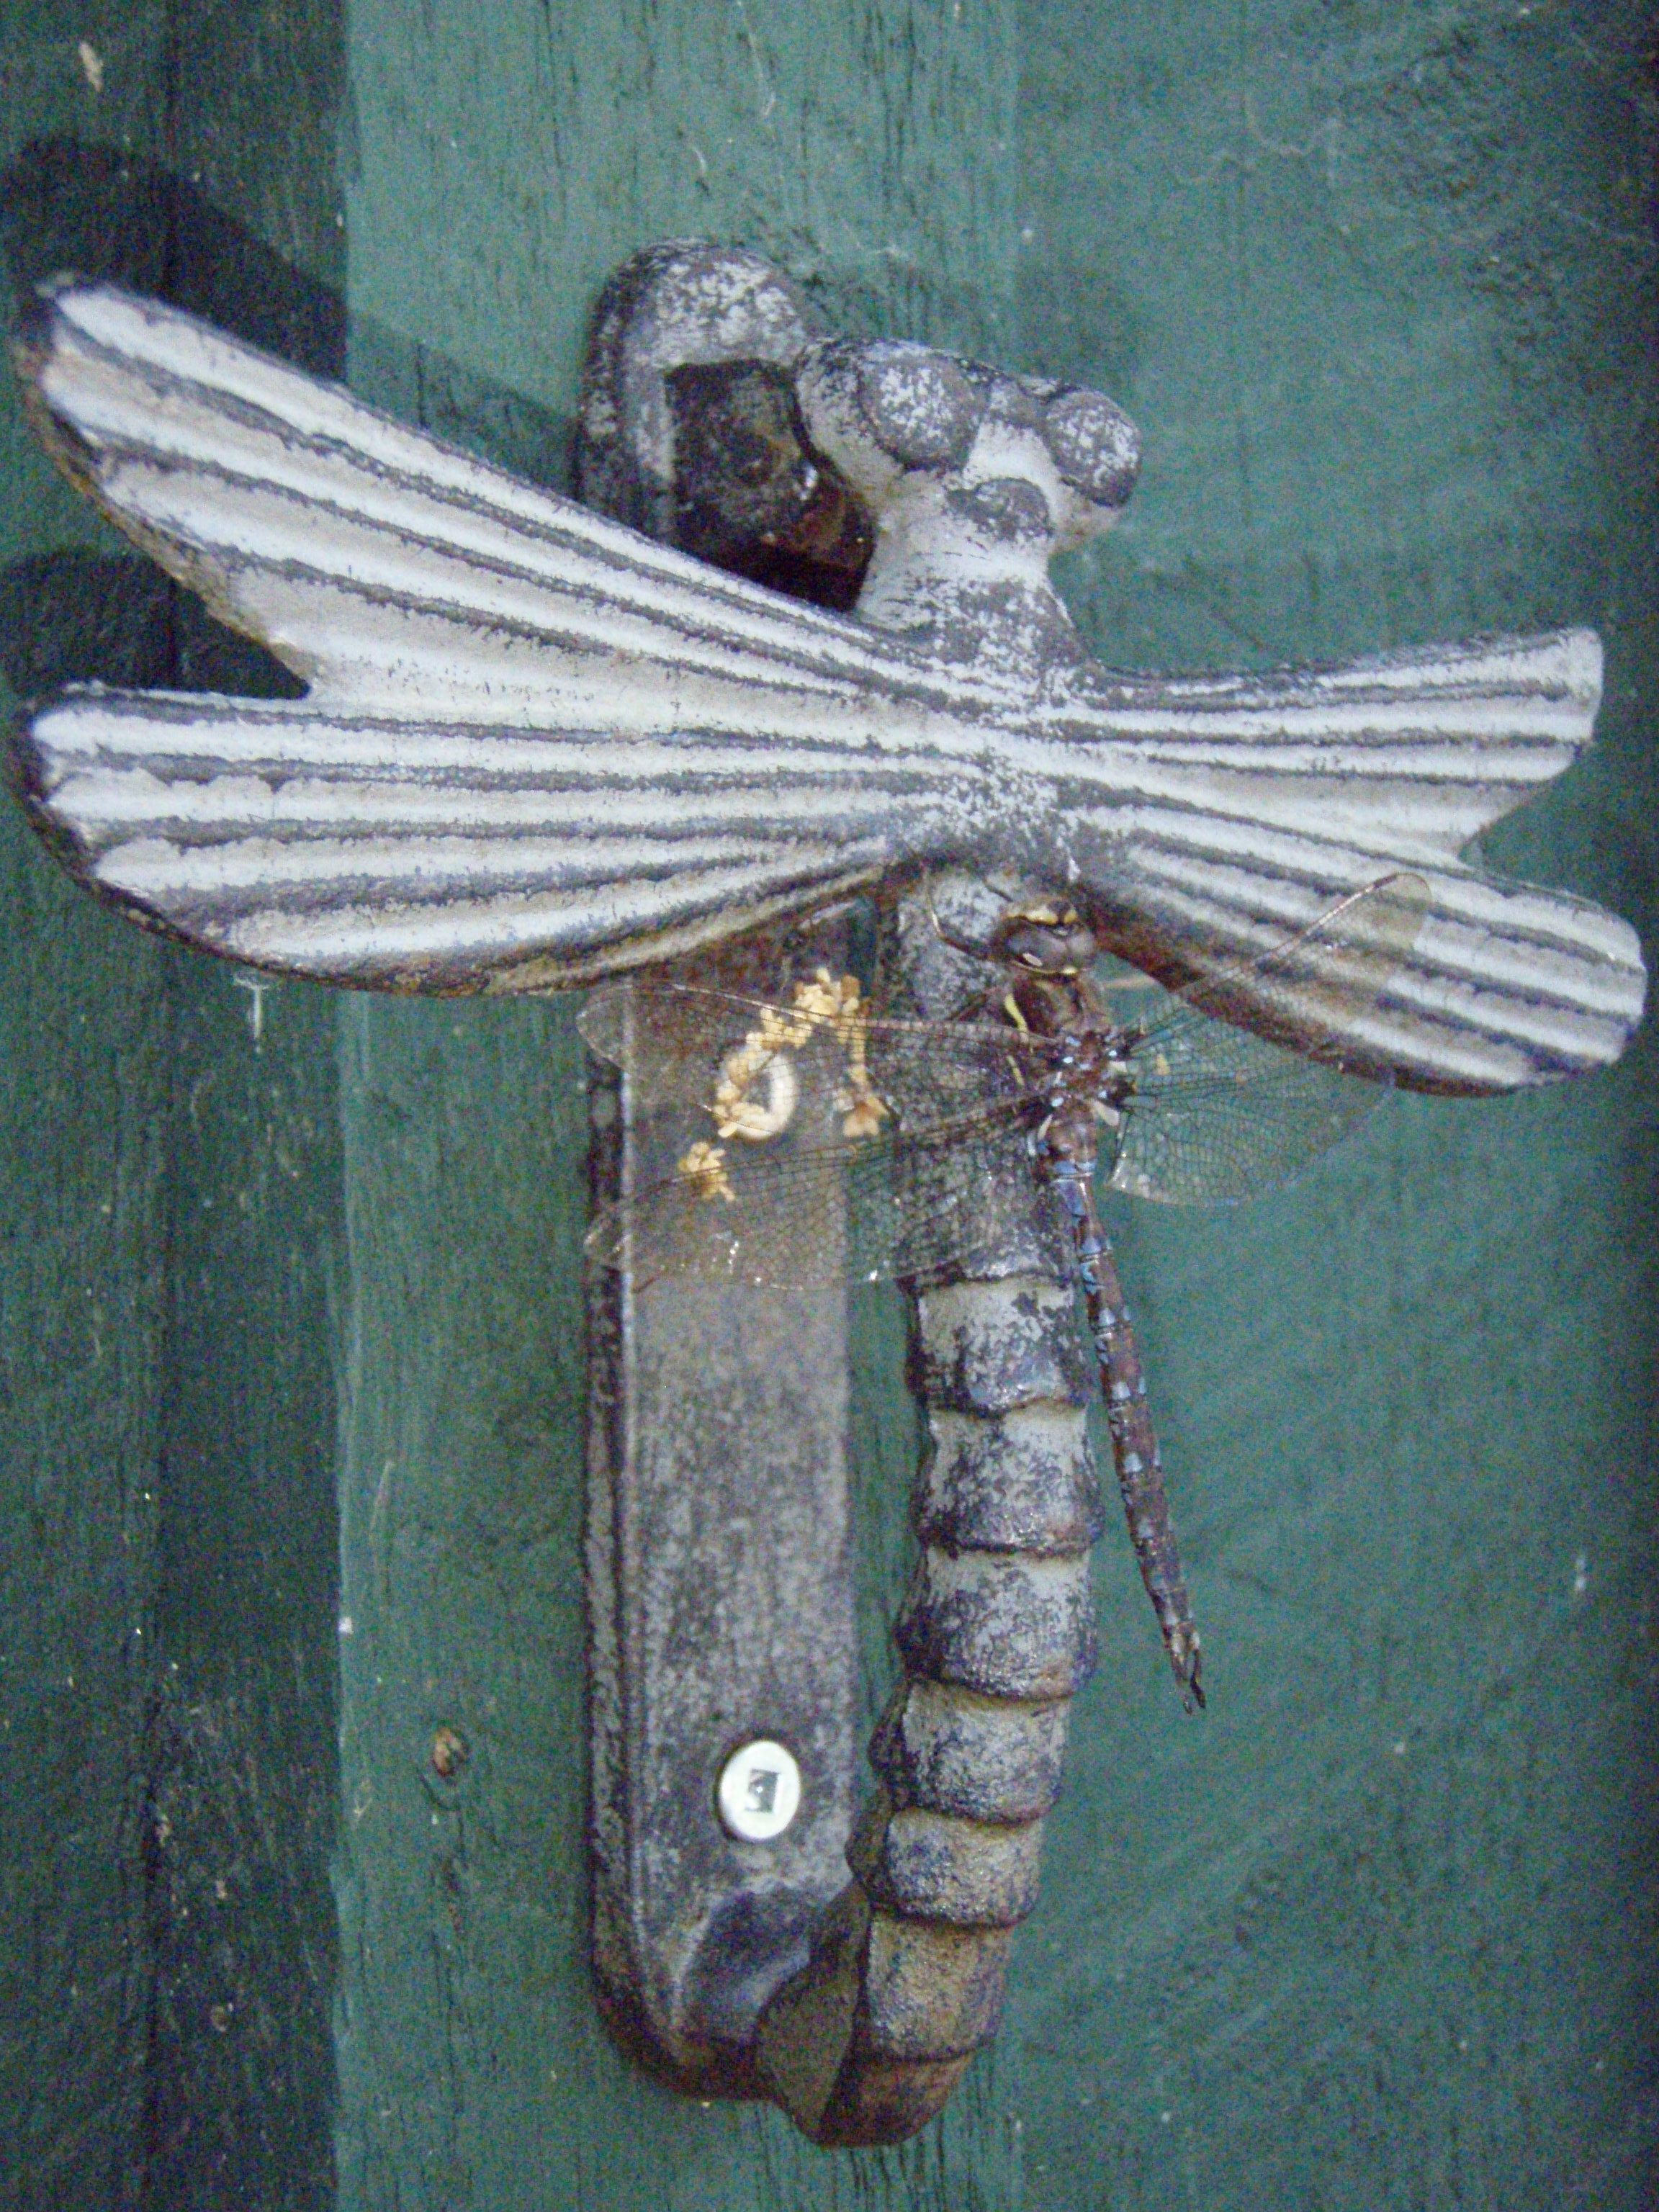 Exceptionnel Actual Dragonfly On A Dragonfly Door Knocker. Think They Found A Friend?  LOL!